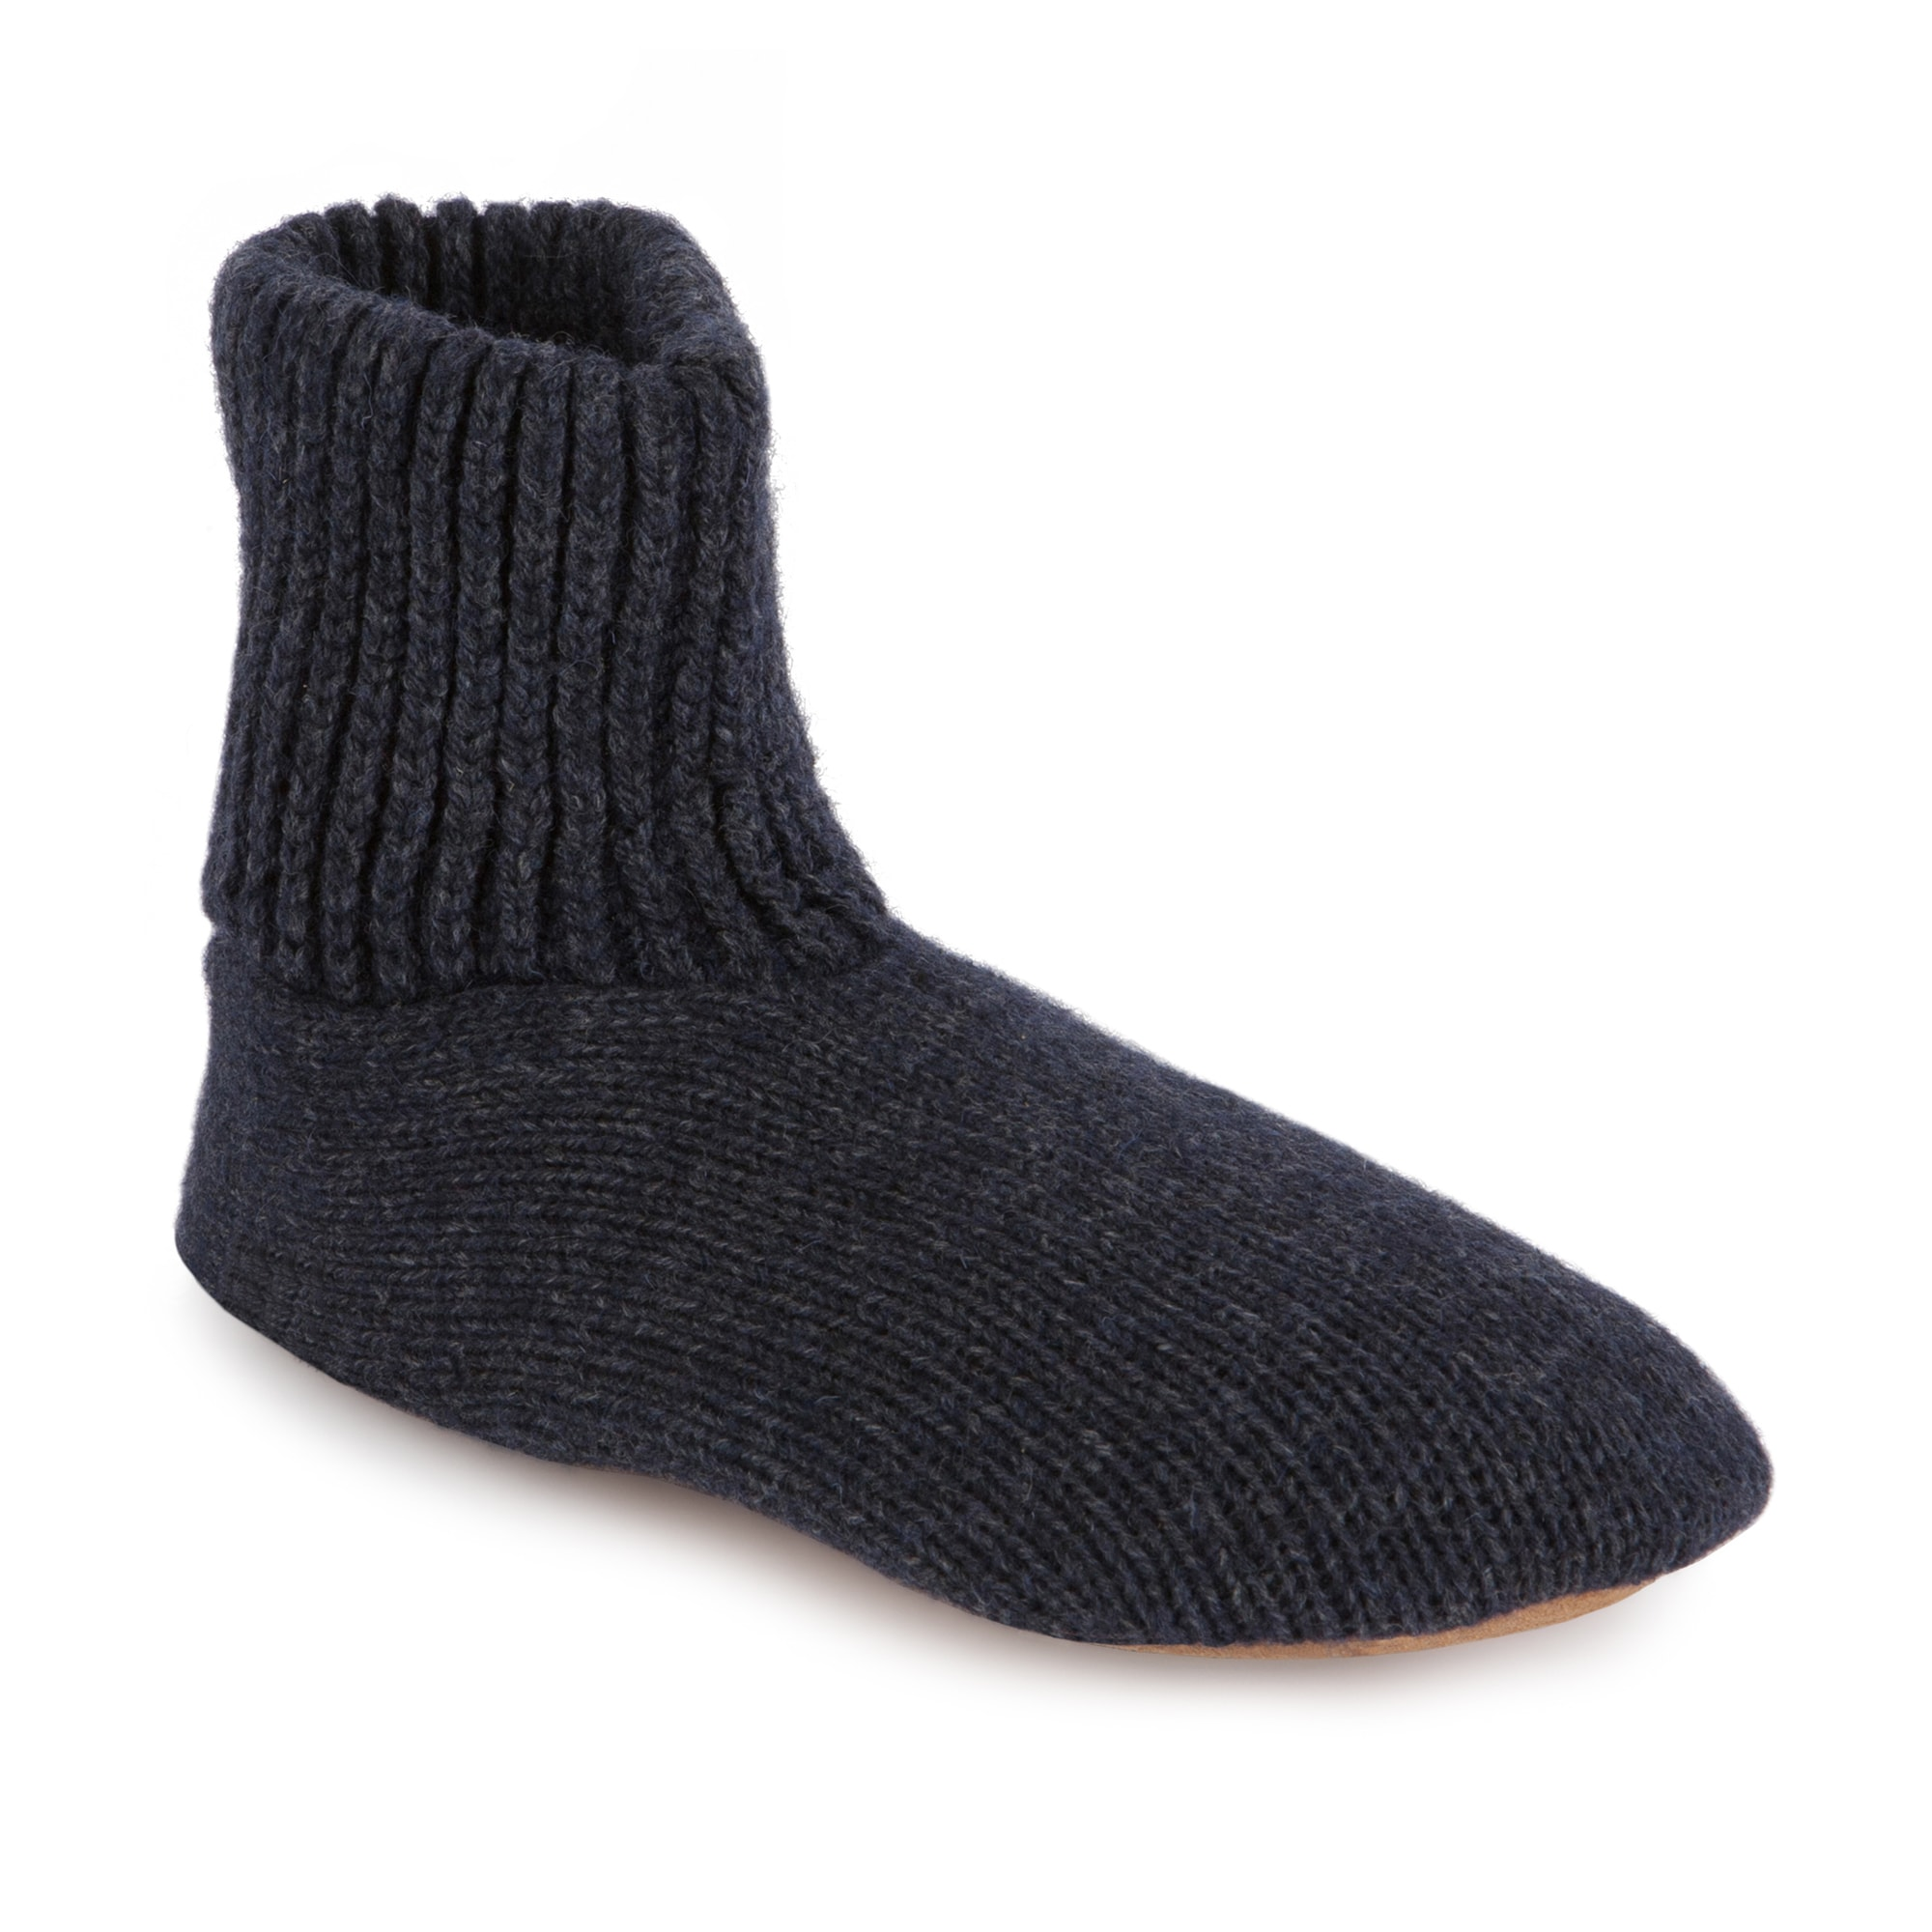 Shop MUK LUKS Morty - Men\'s Ragg Wool Slipper Sock with Leather Sole ...